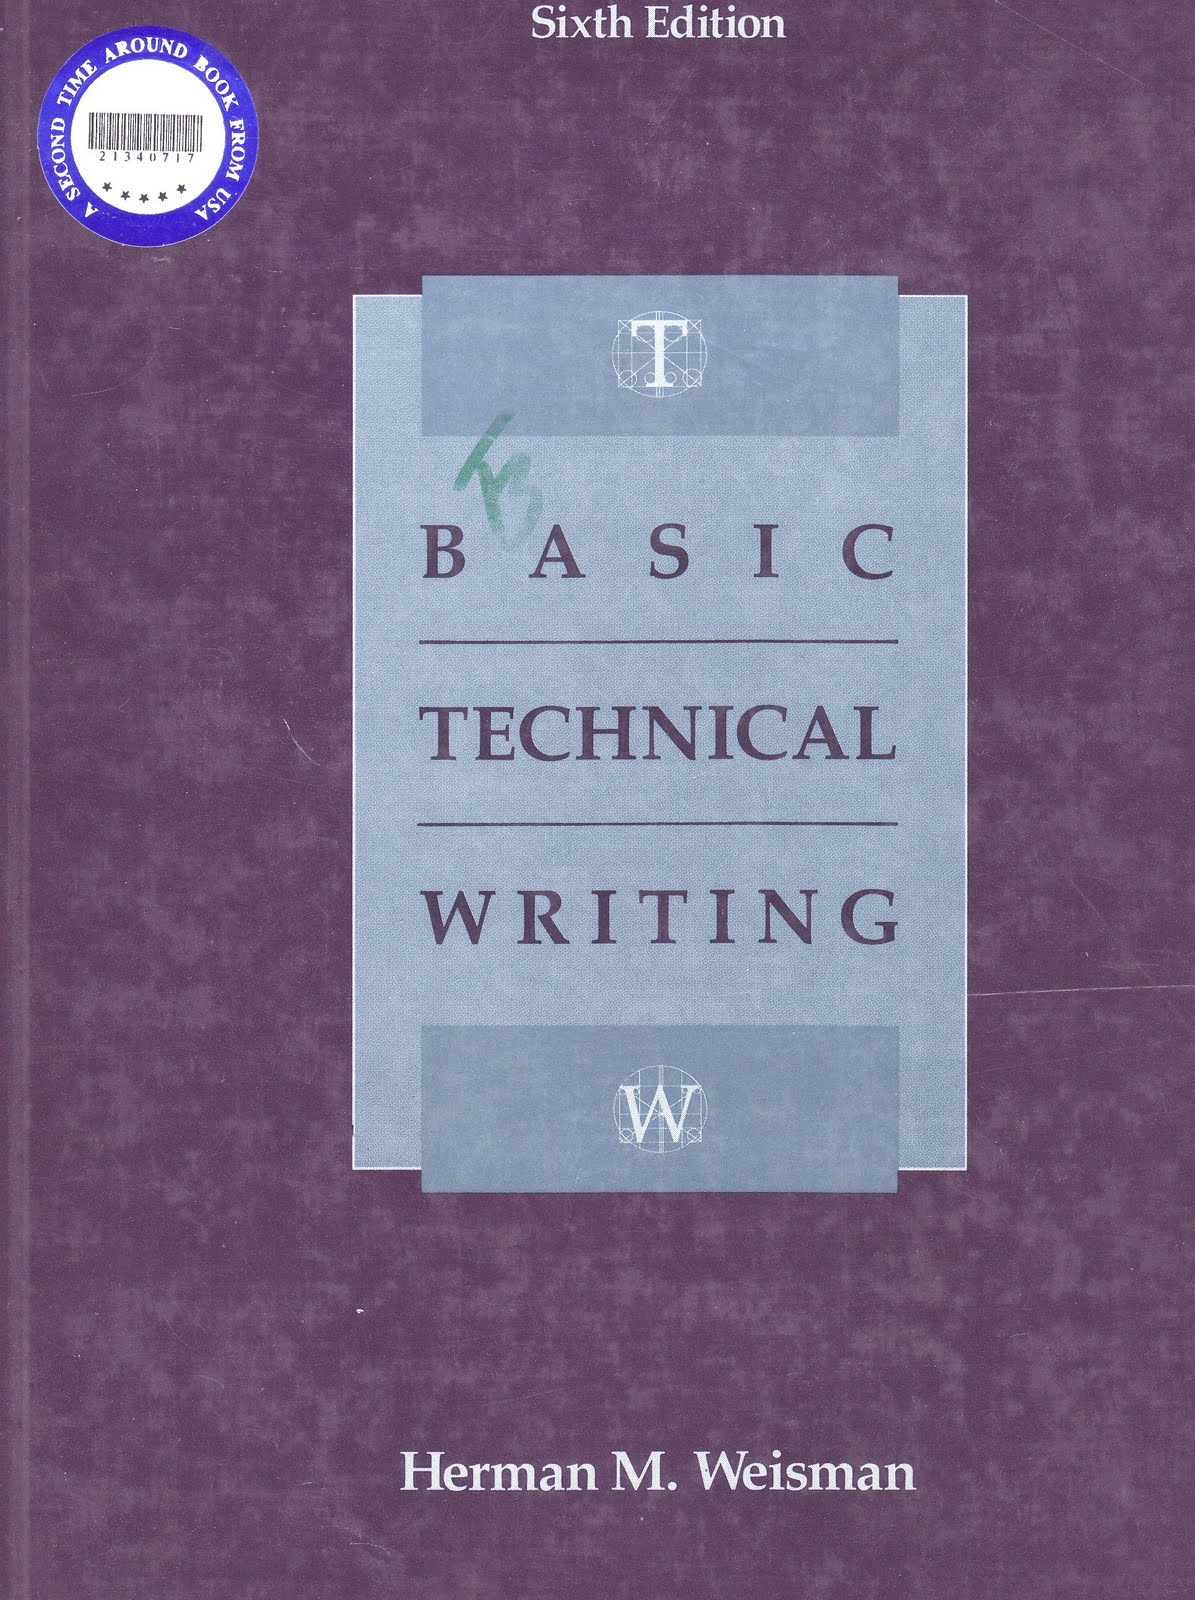 technical writing books 14 books based on 2 votes: the elements of style by william strunk jr, on writing well: the classic guide to writing nonfiction by william zinsser, the.